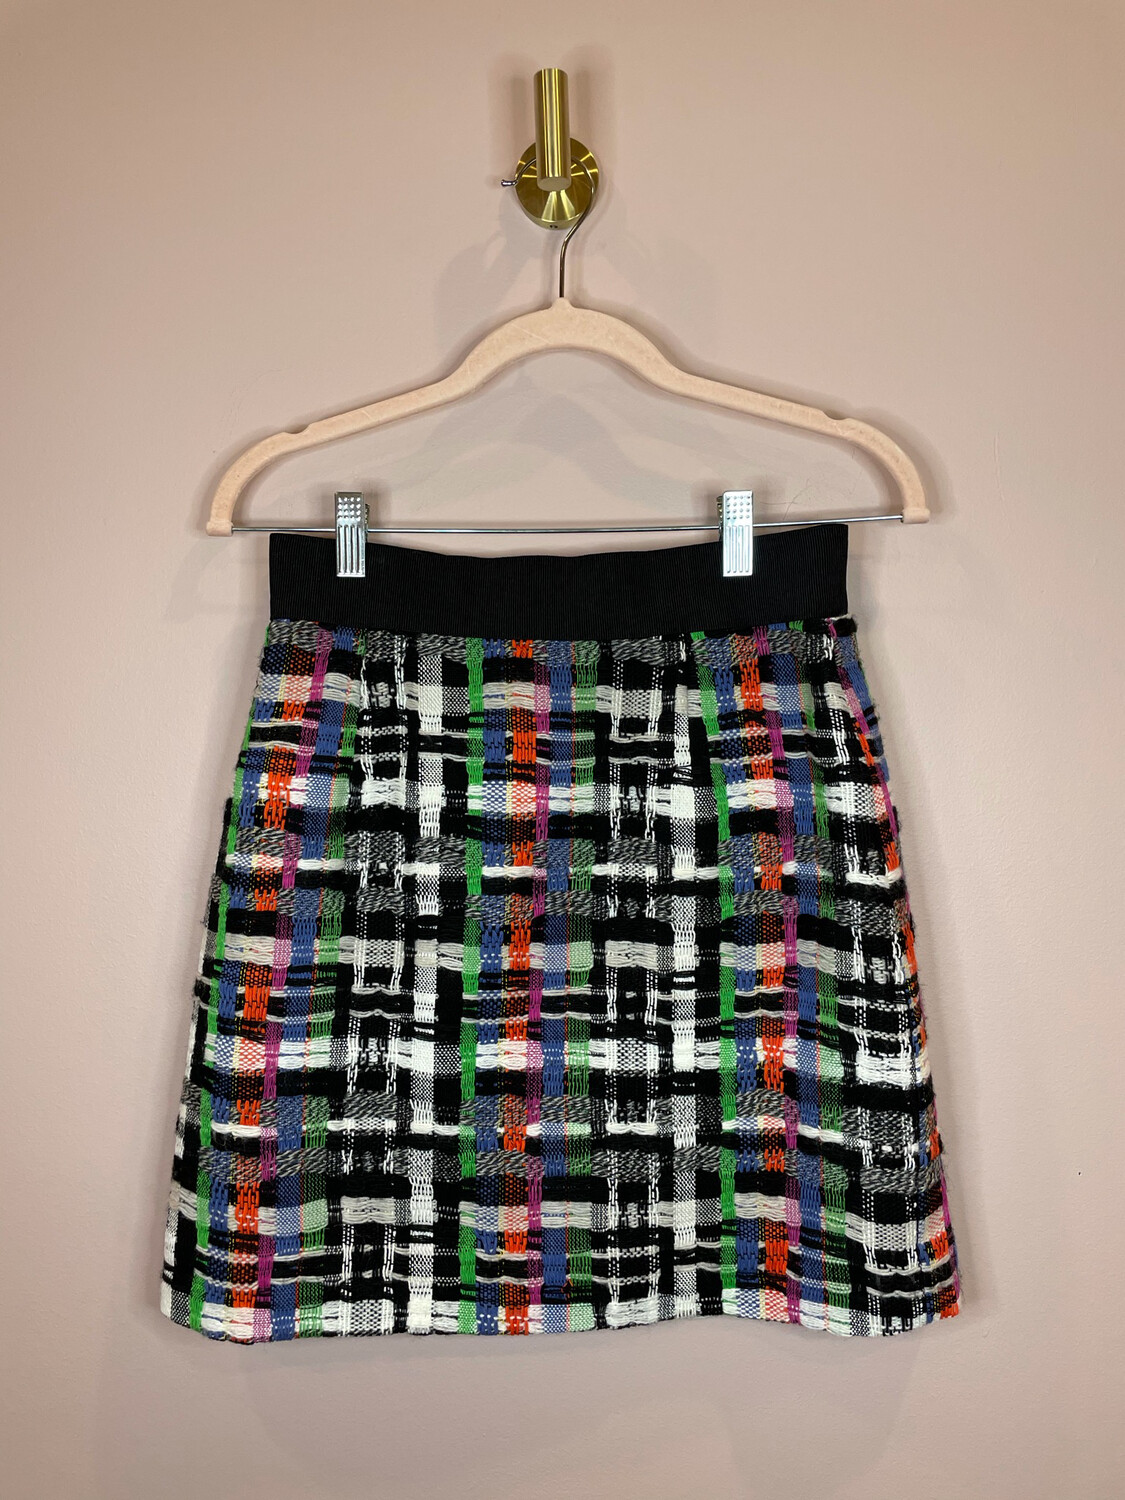 Milly Black & White Skirt w/Color Accent - Size 4